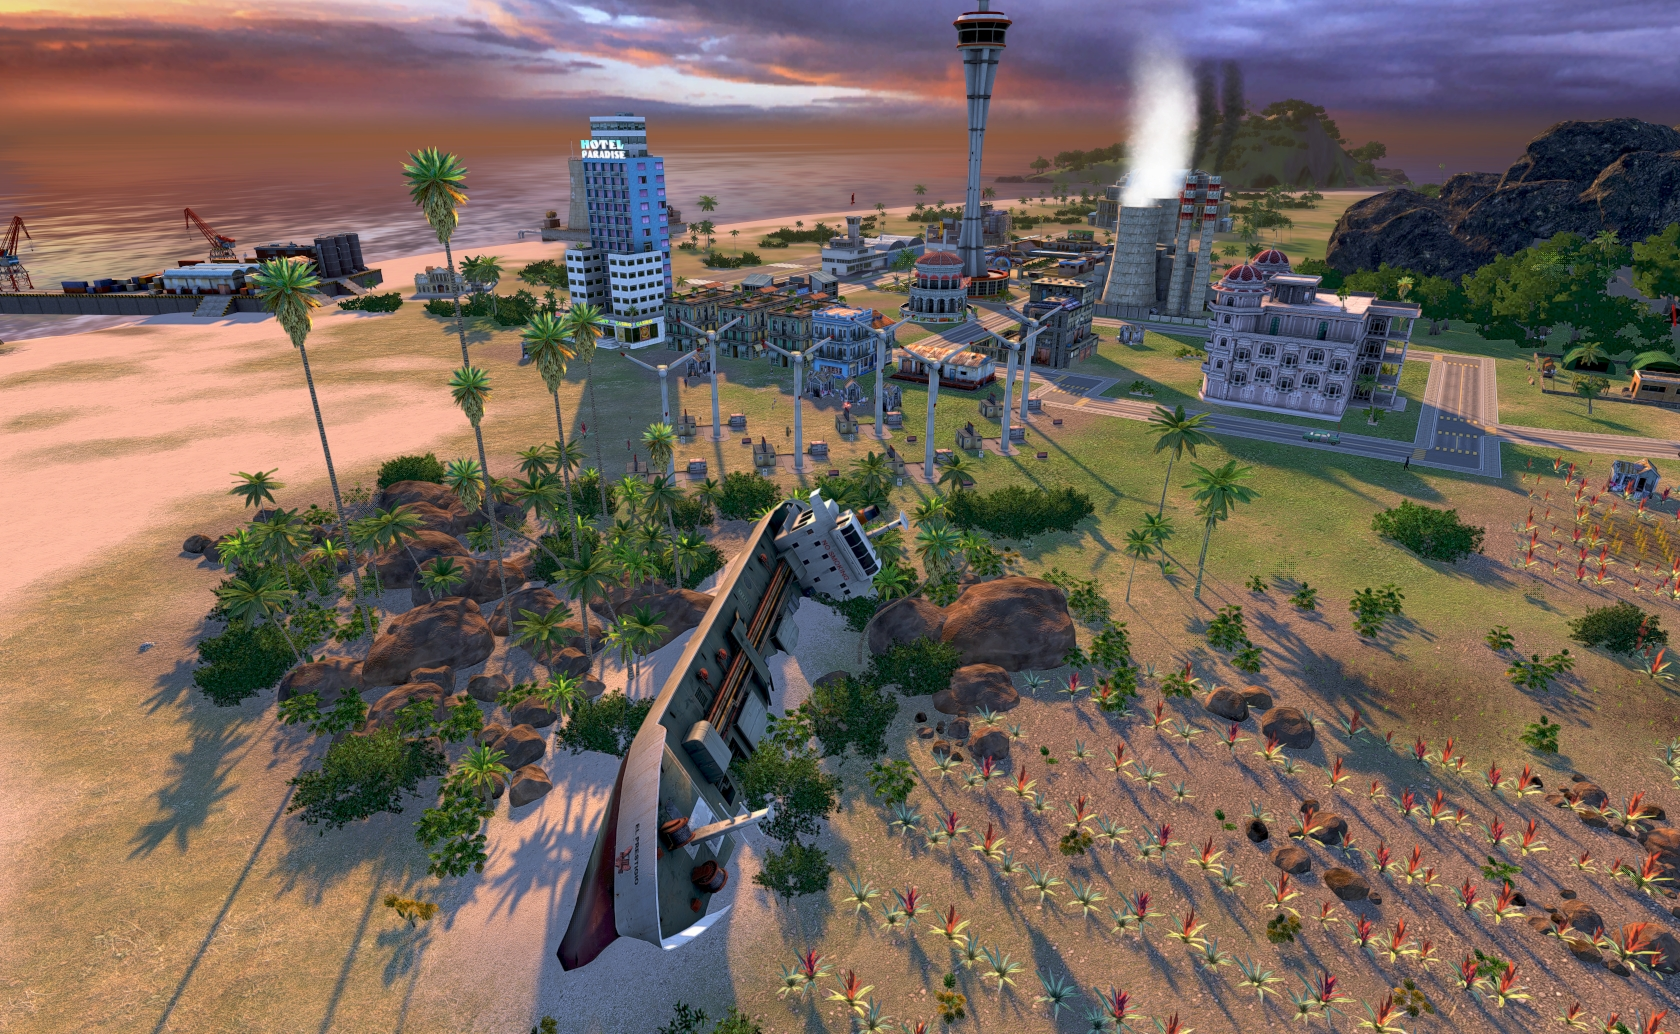 You can play Tropico 4 on July 25